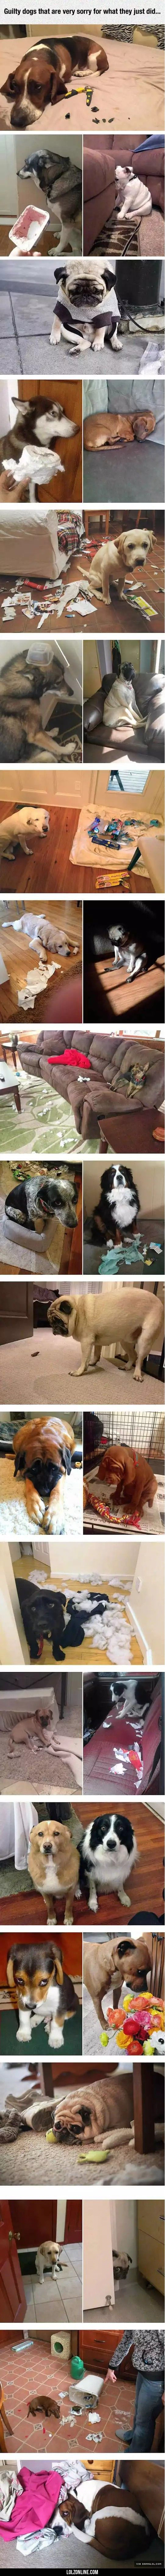 Guilty Dogs - awwww!!!! It's ok I forgive you!! Lol, man... those pug guilt faces